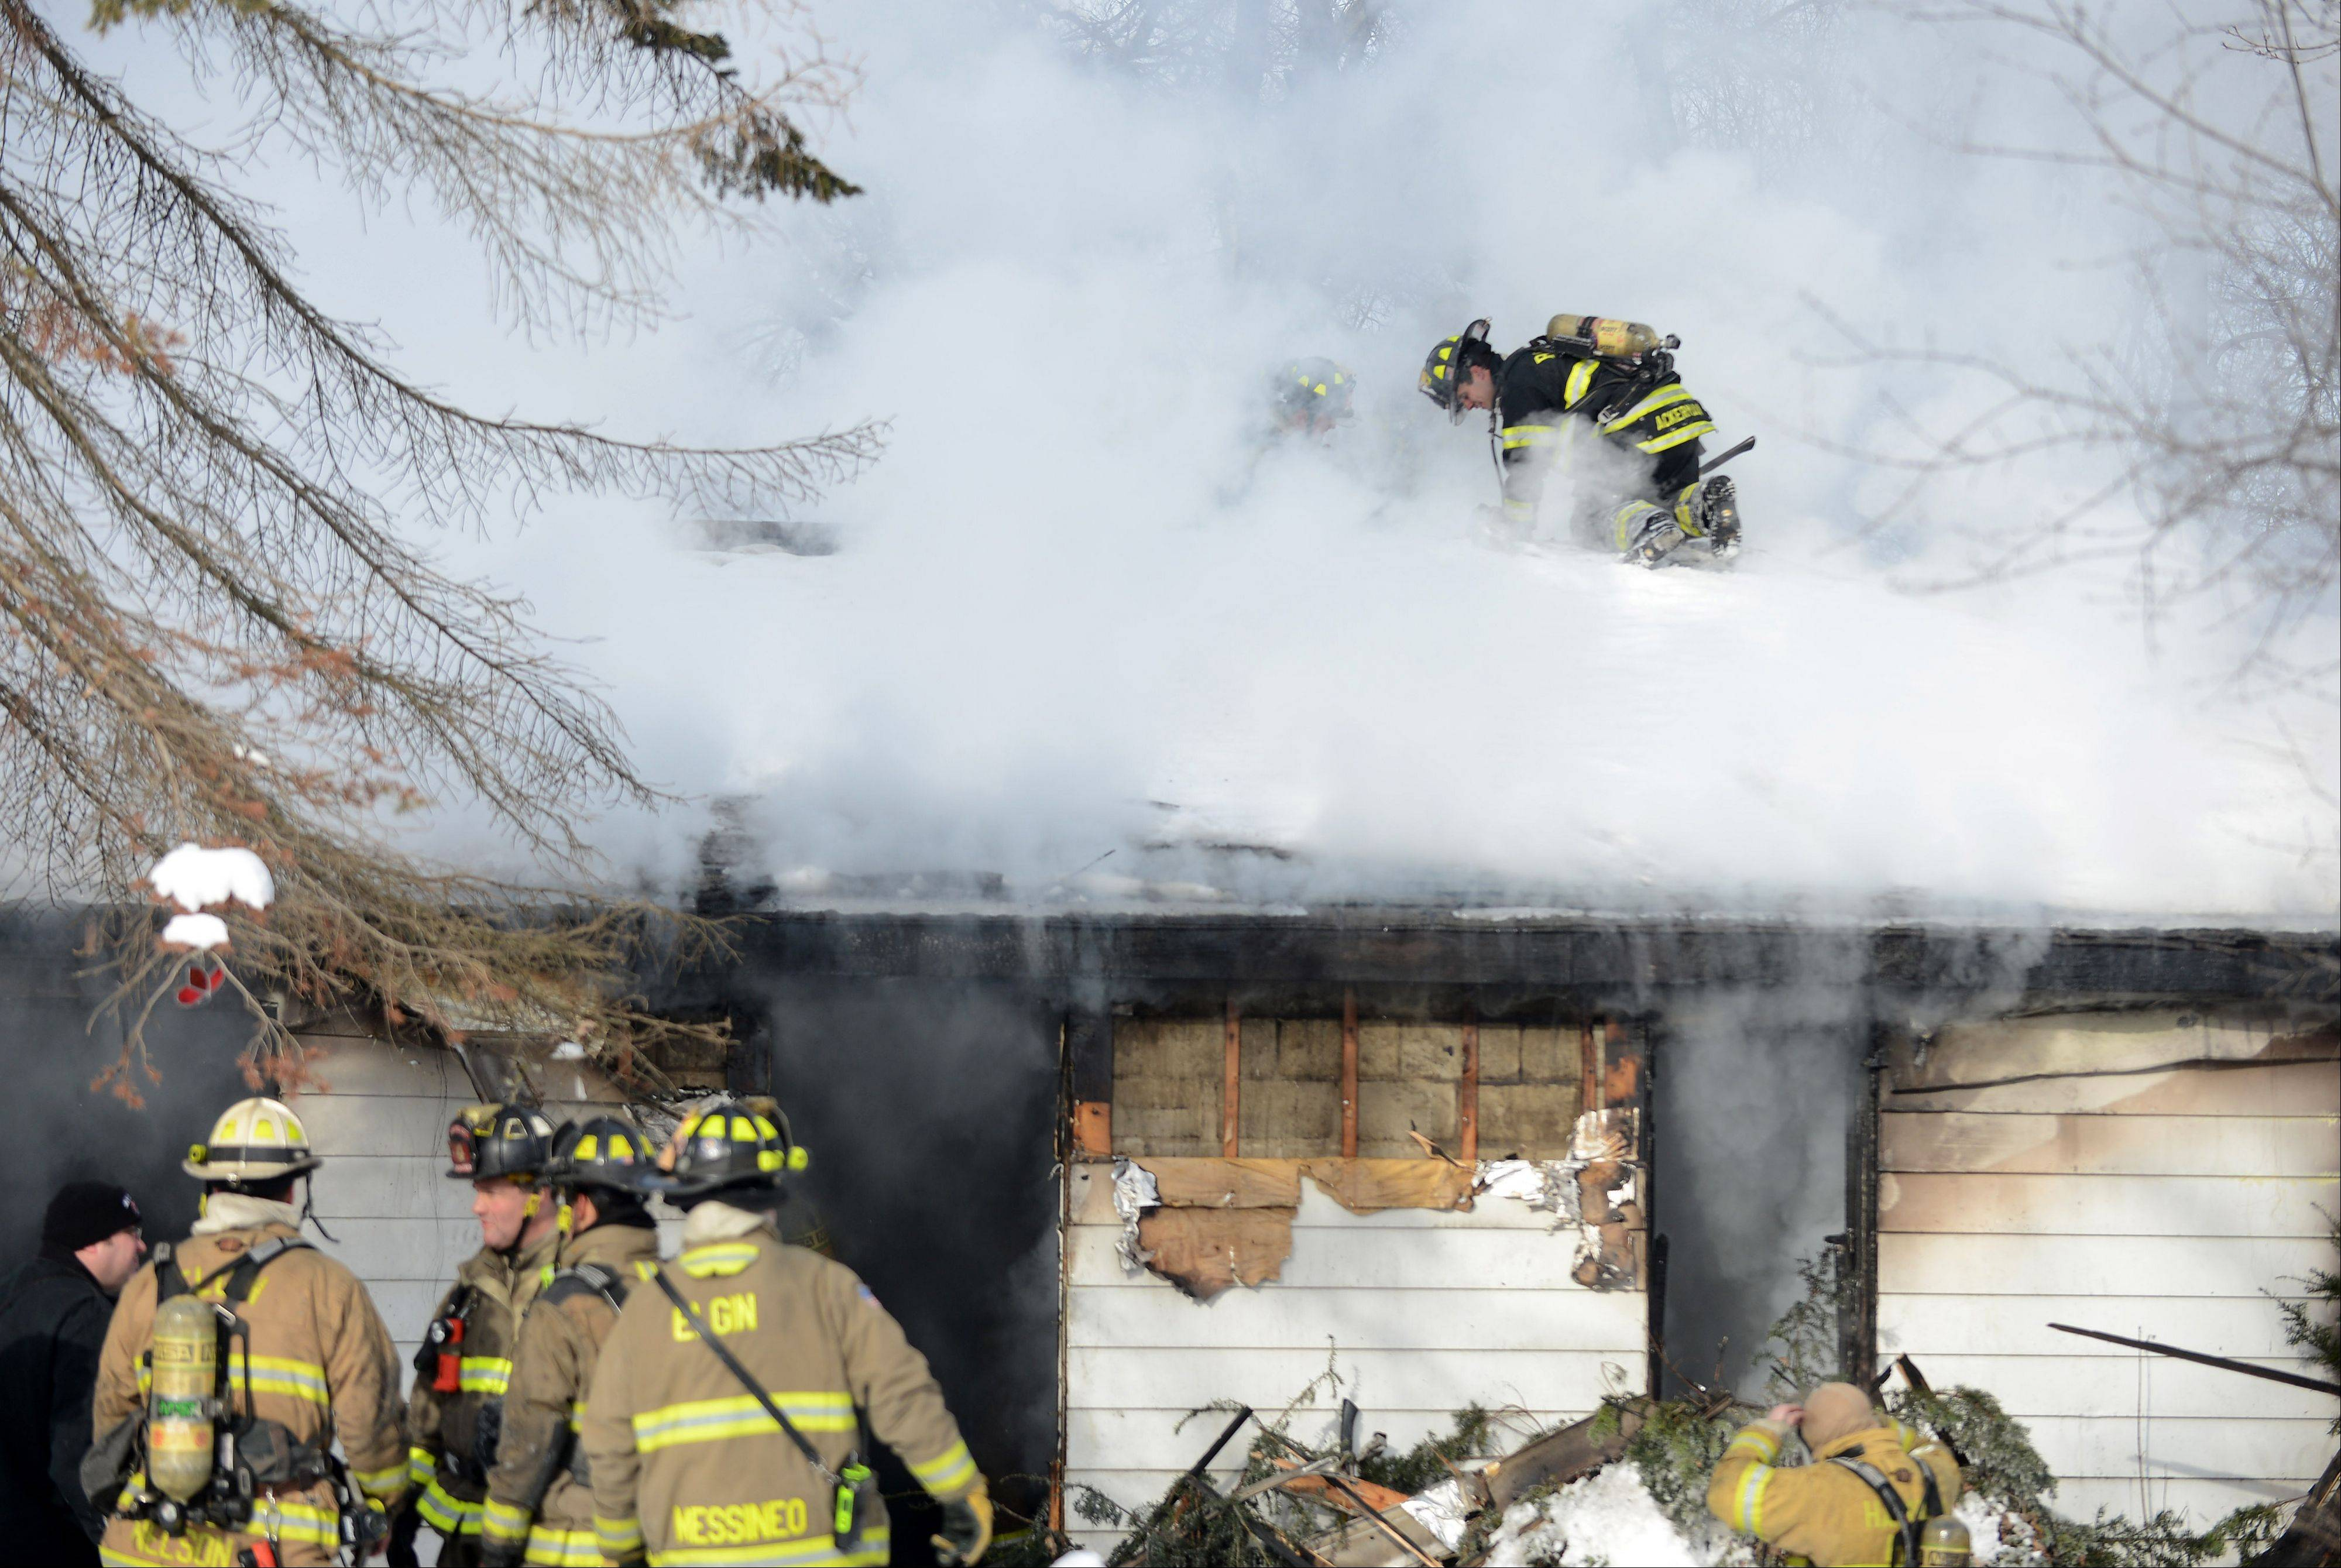 Firefighters work a house fire Wednesday on the 100 block of Beck Avenue in South Elgin, where a 72-year-old man who used a walker was killed. His wife, who uses a wheelchair, was rescued.